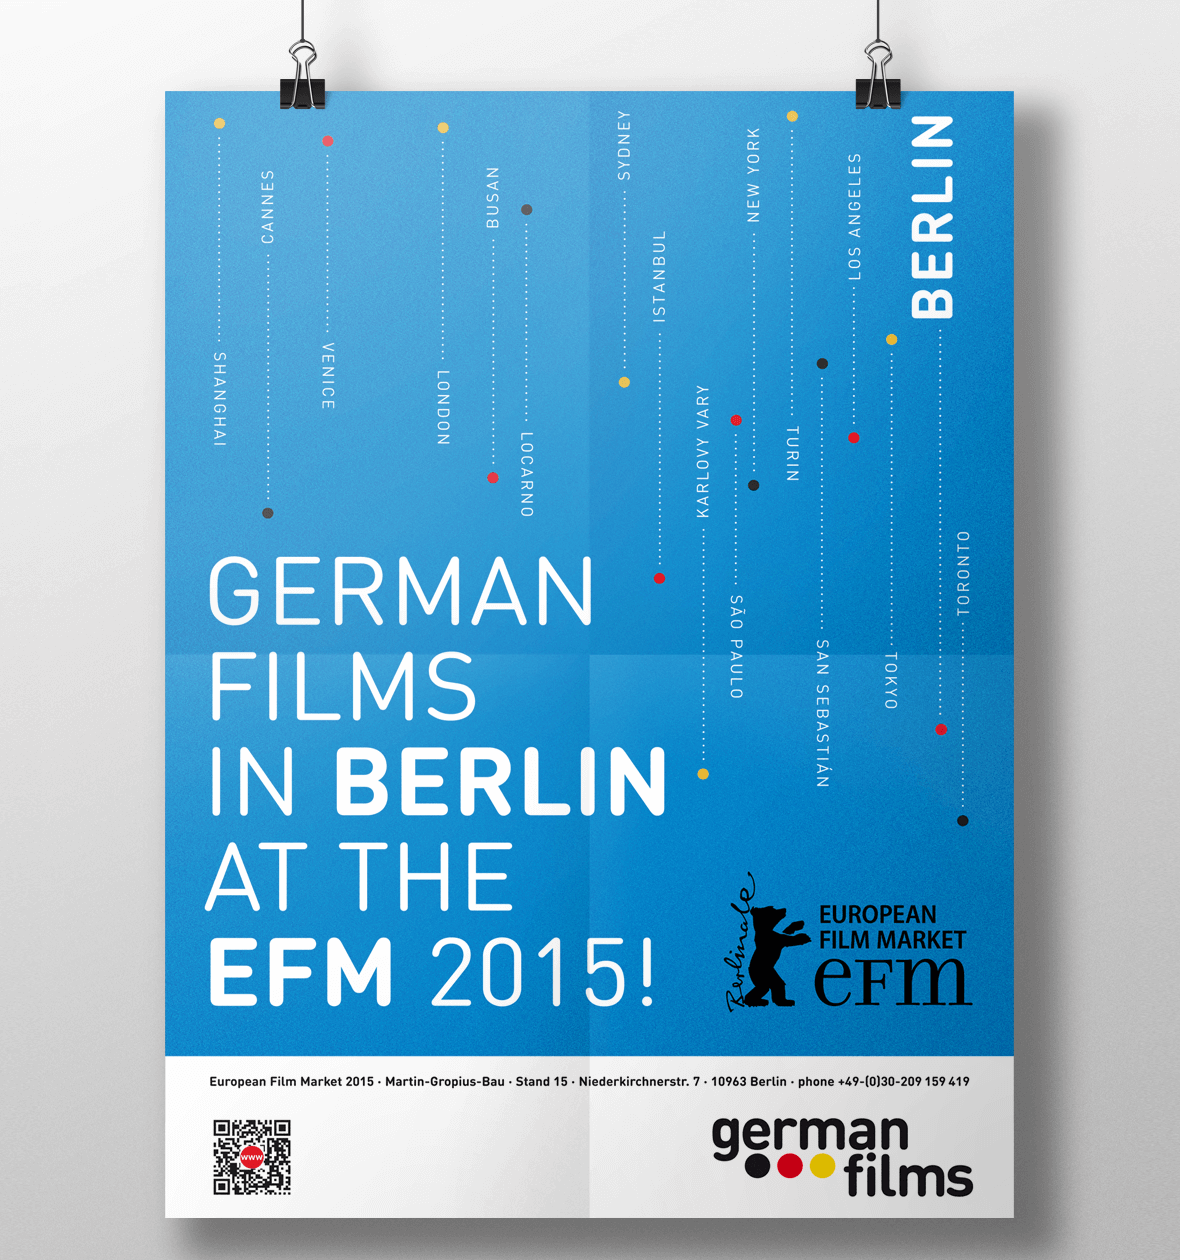 Imageposter German Films für Berlinale 2015